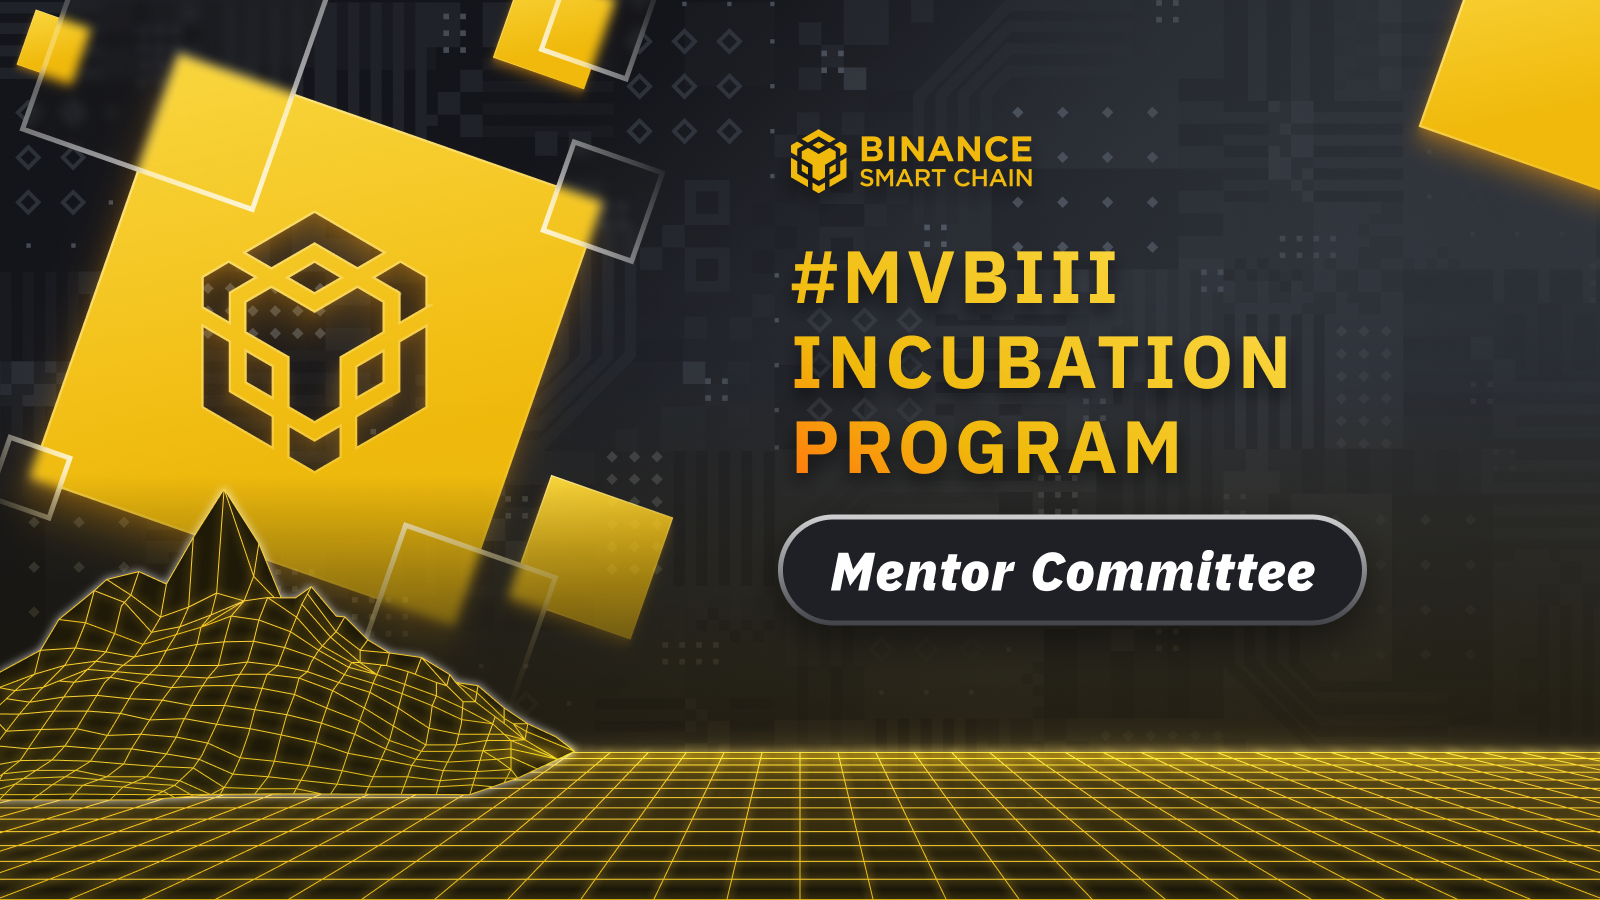 MVB Incubation Program: Introducing the Mentor Committee!